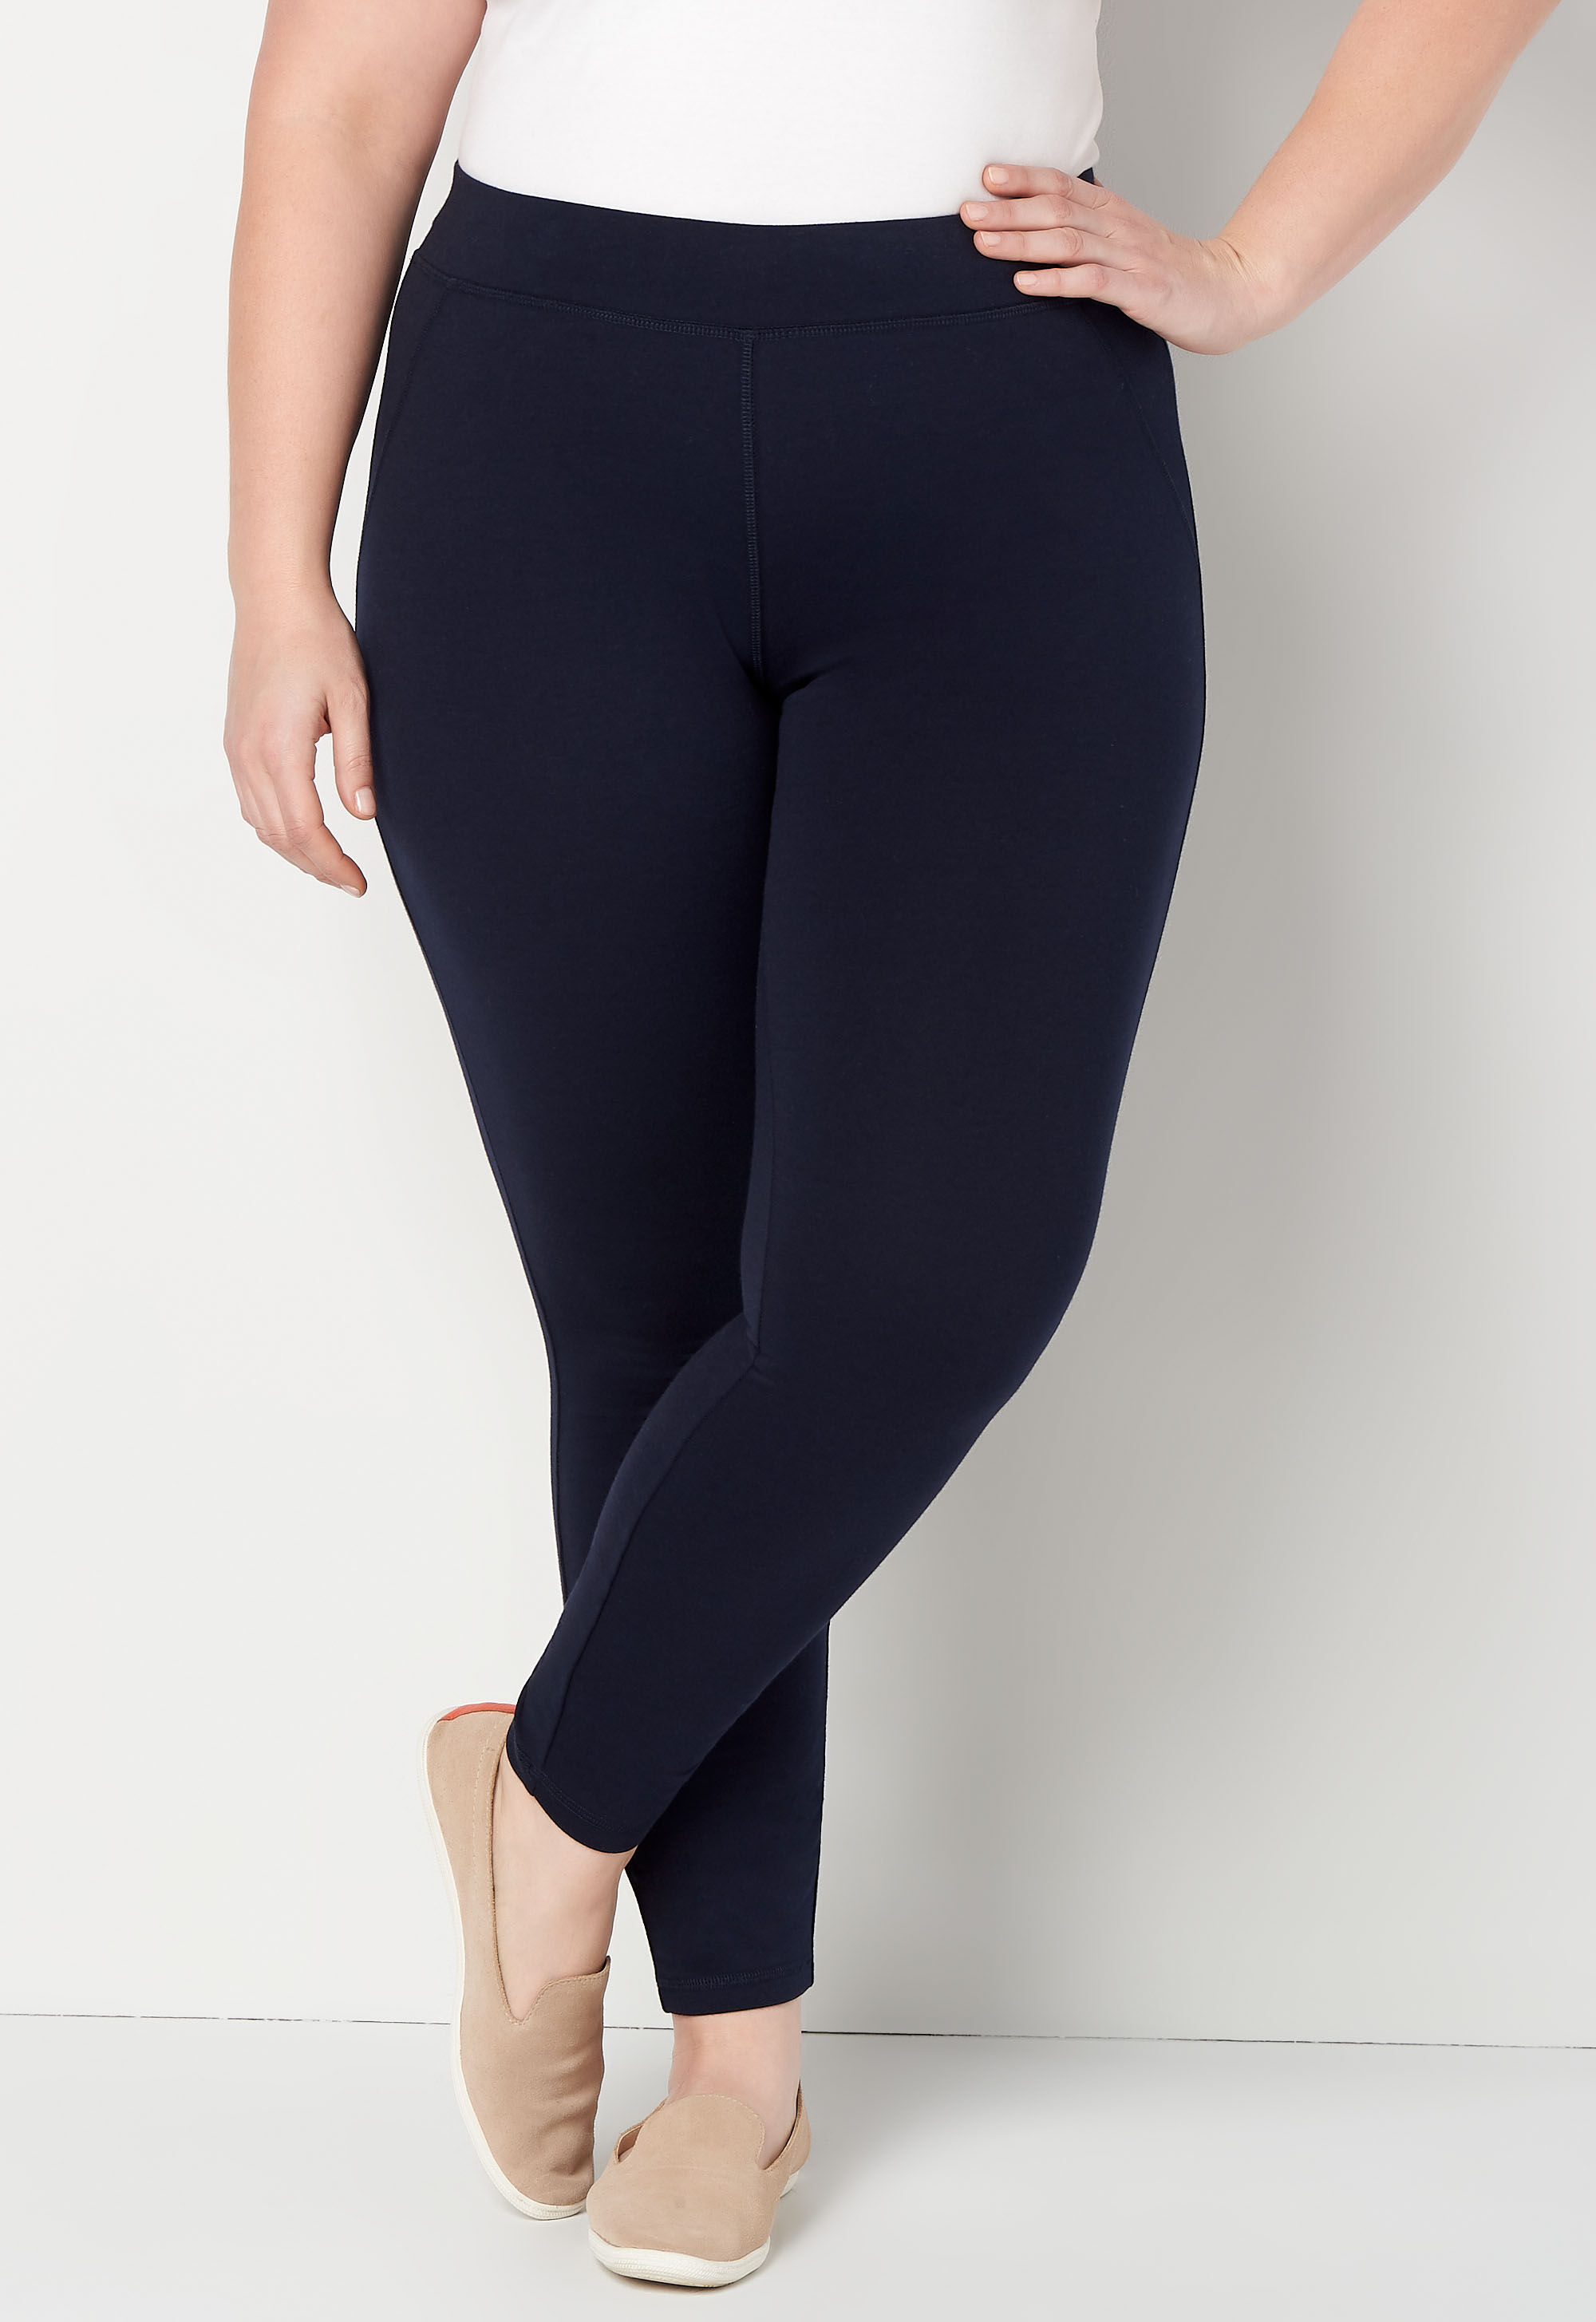 Relaxed Restyled Pull on Plus Size Legging 4